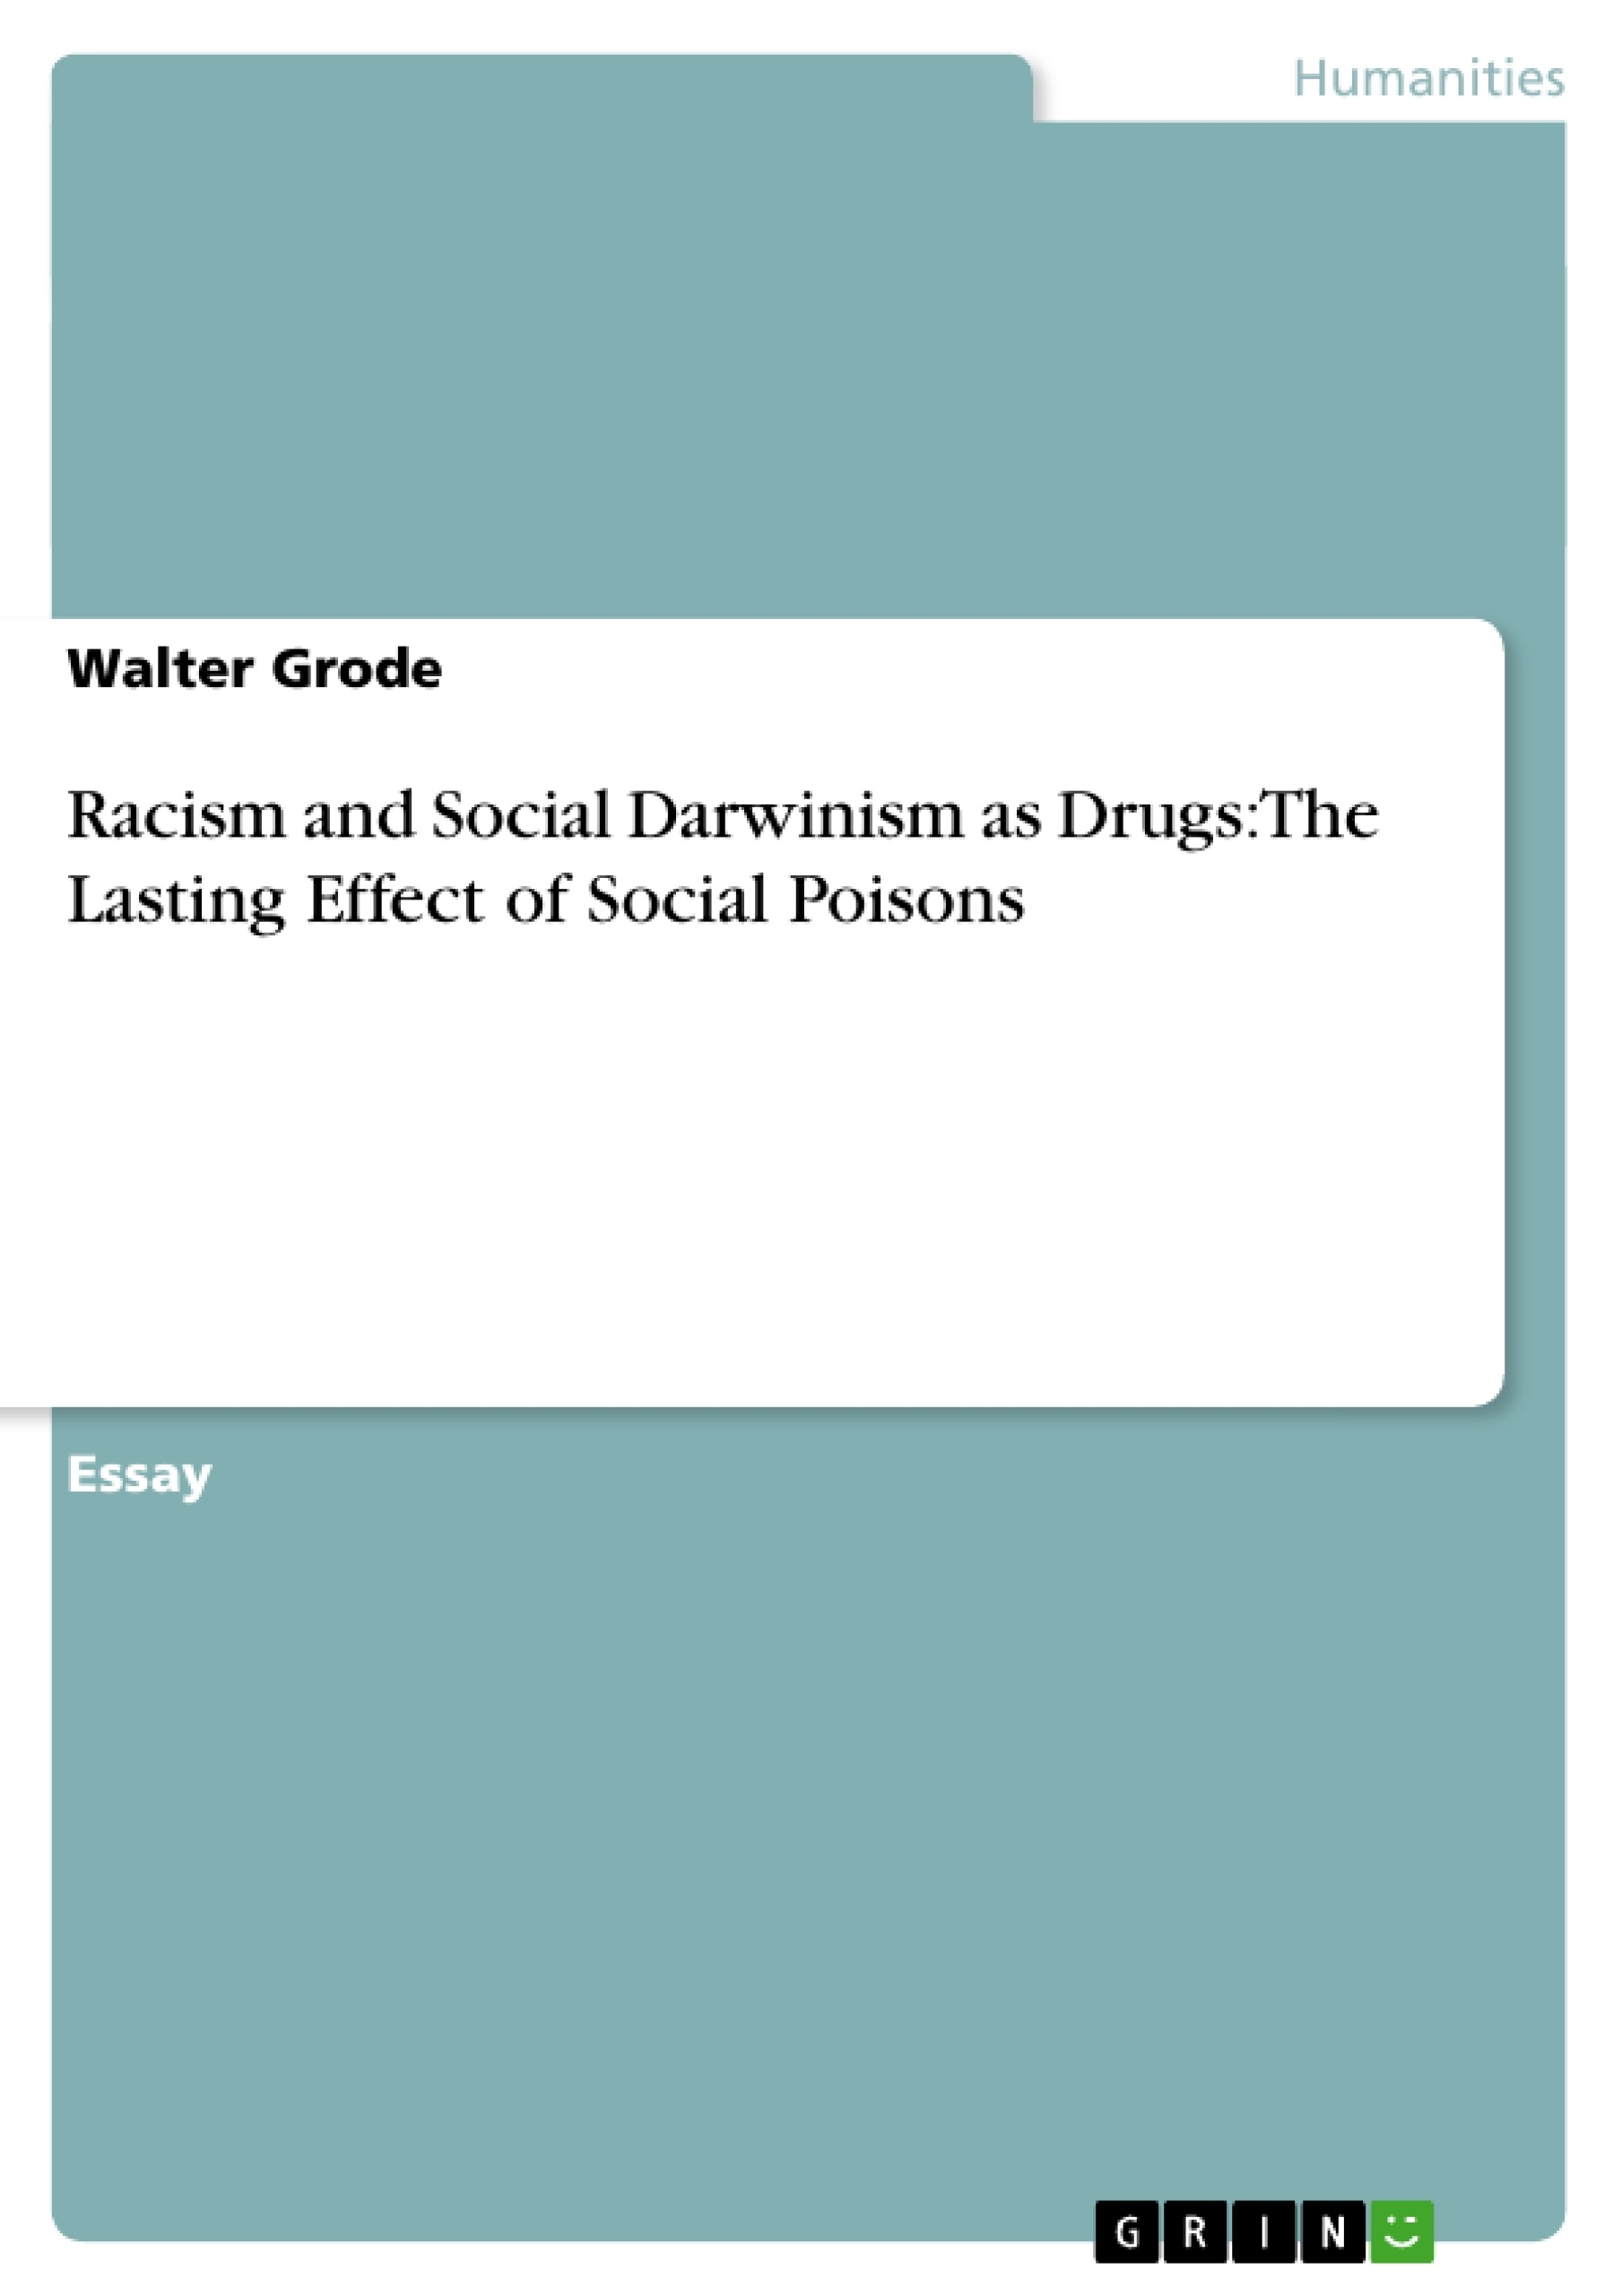 Title: Racism and Social Darwinism as Drugs: The Lasting Effect of Social Poisons